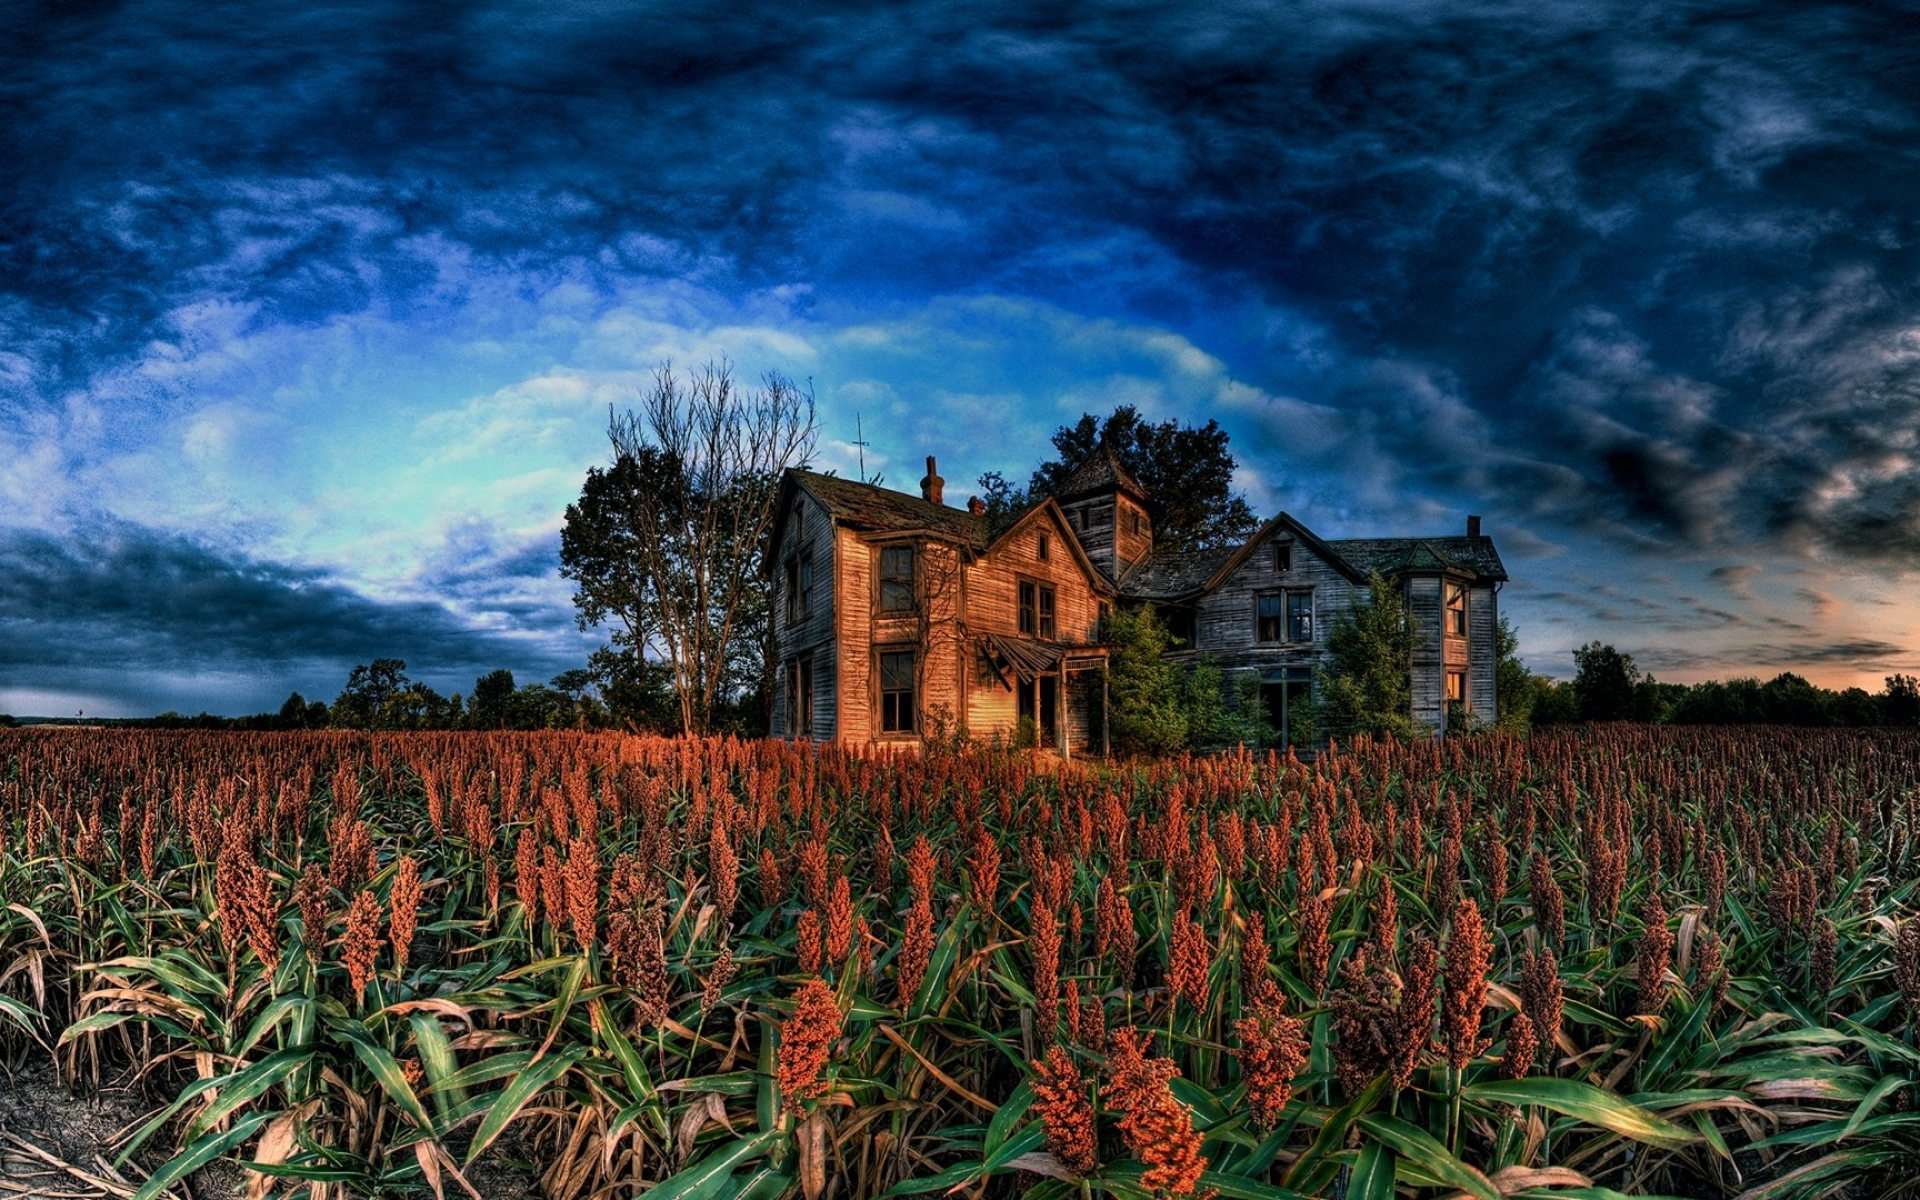 Fall Harvest Wallpaper Clouds Old House Amp Corn Field Wallpapers Clouds Old